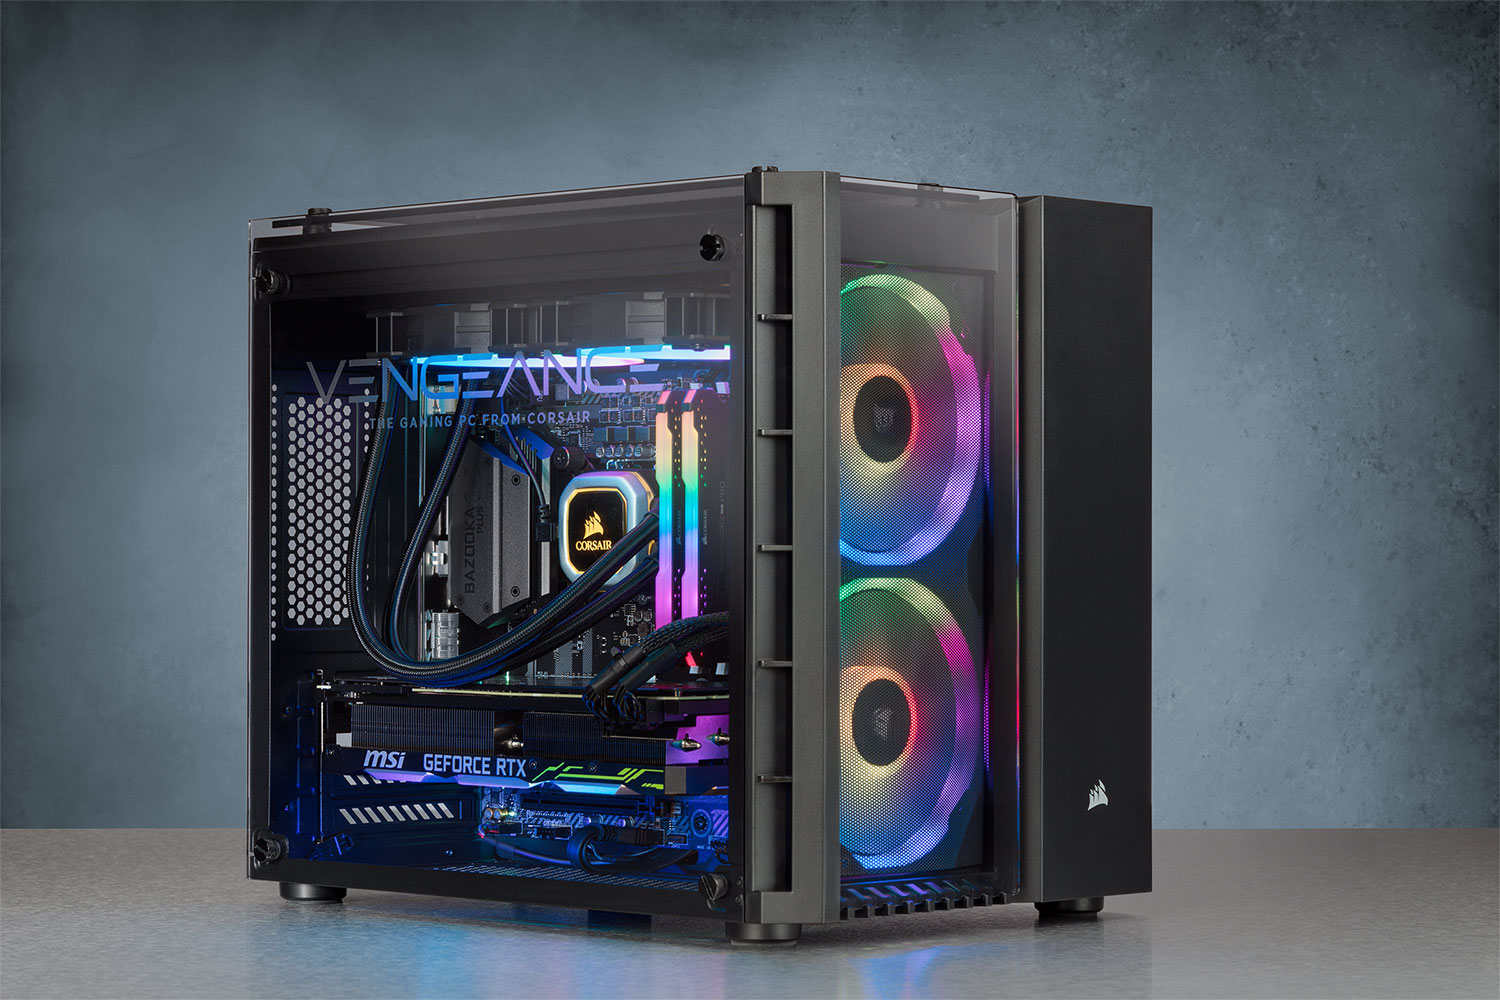 Corsair's new gaming PC wields a GeForce RTX 2080 and costs